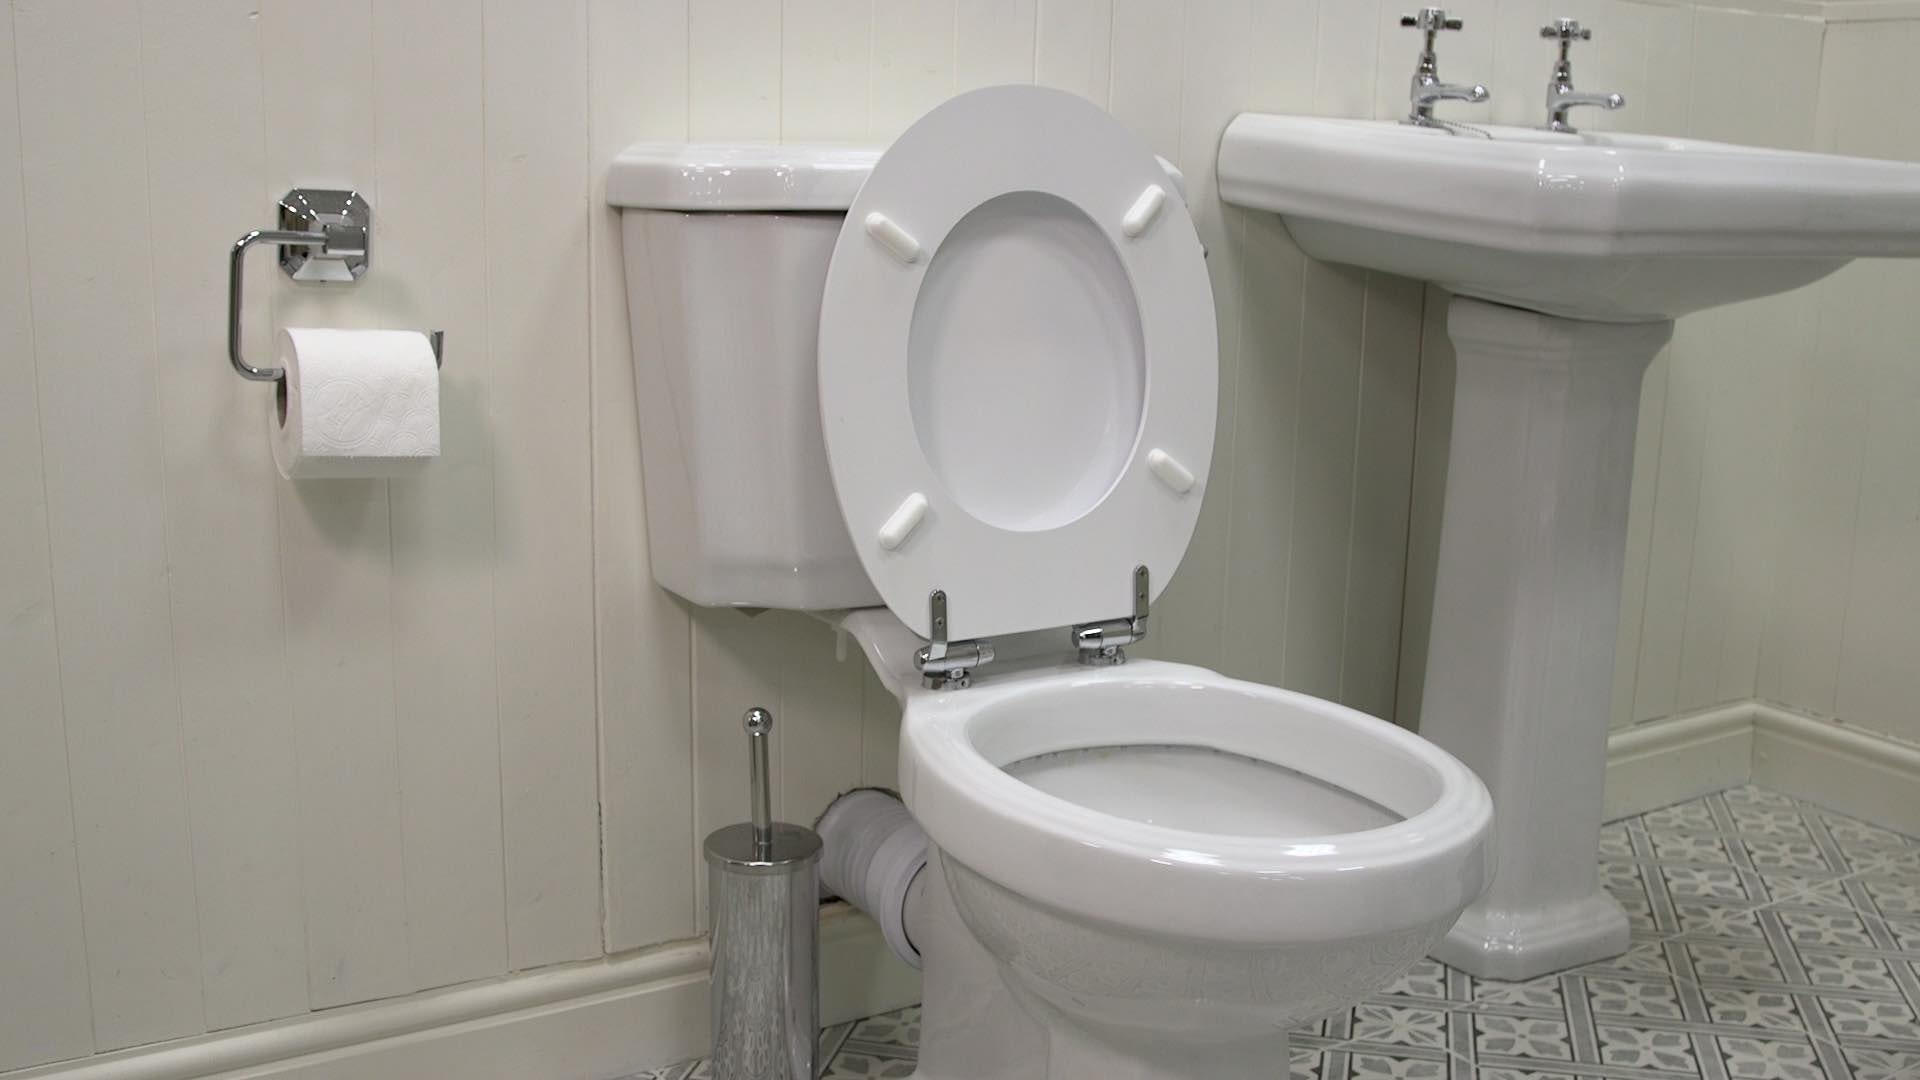 Fit the toilet seat